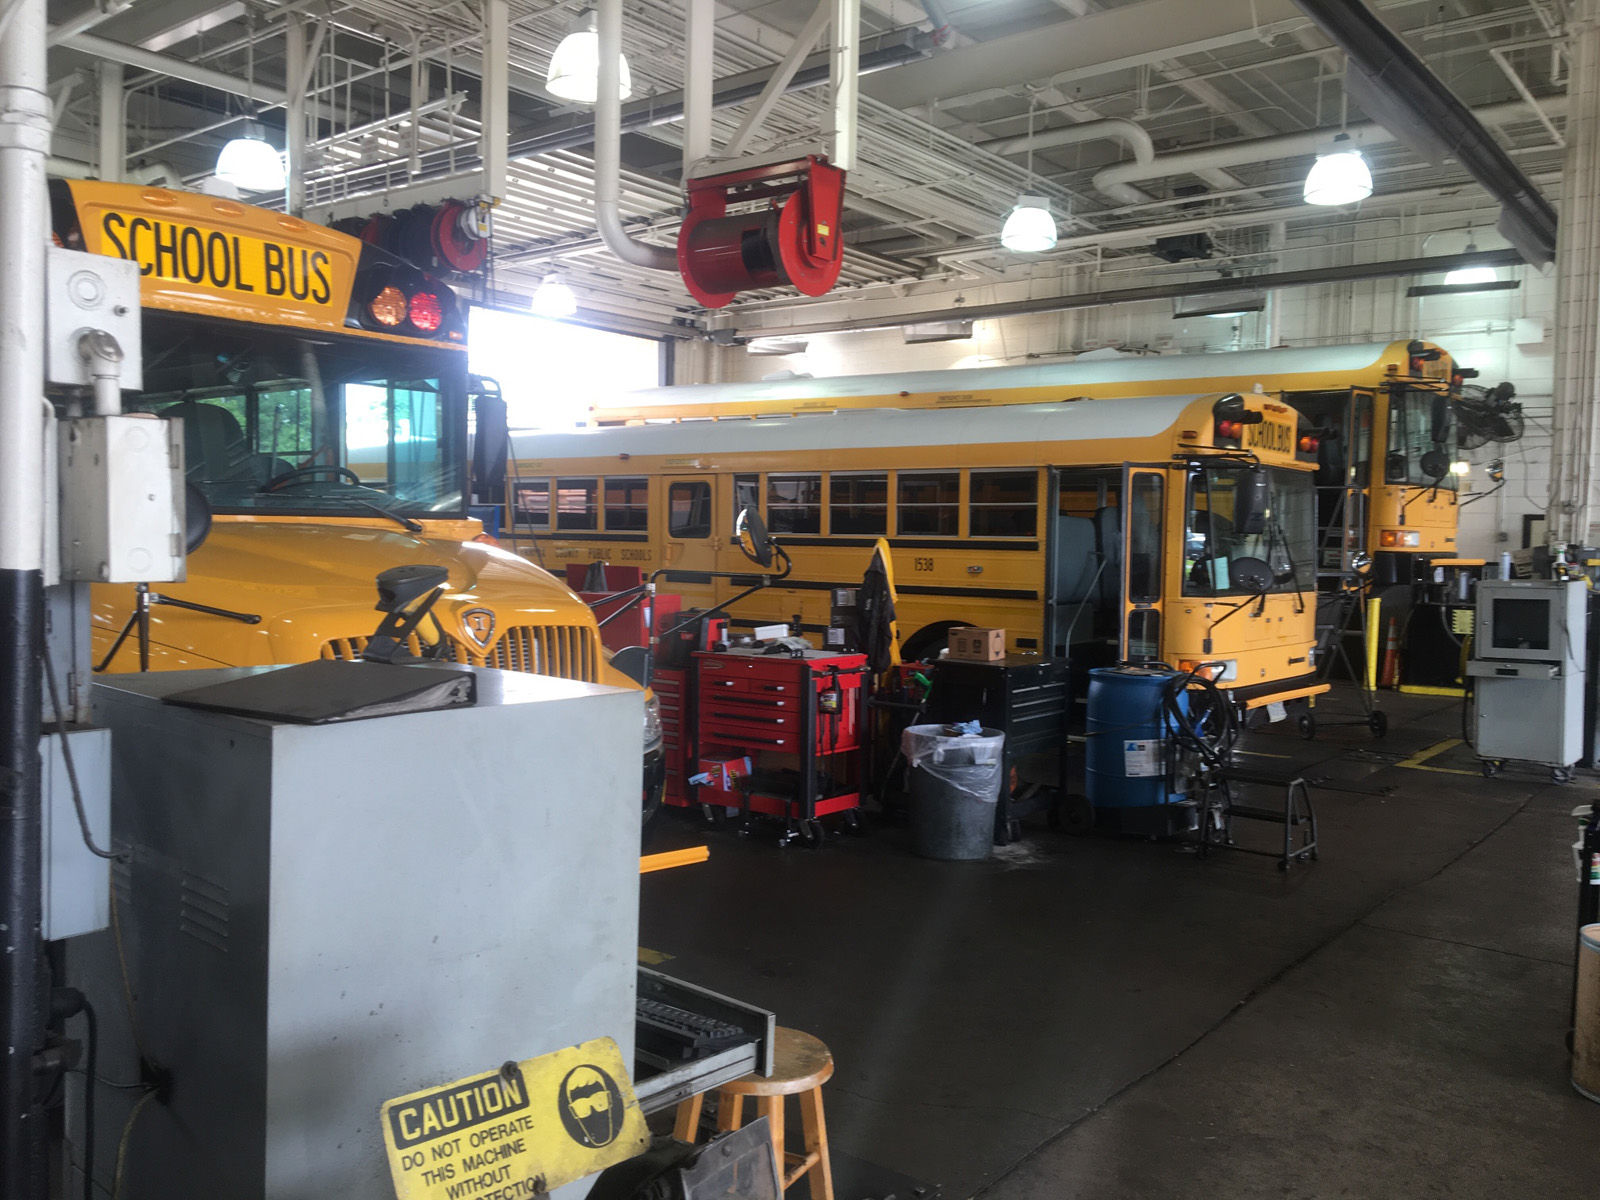 On average, the inspections and basic maintenance take about four hours per bus, including checks of brakes, headlights and flashers. (WTOP/Max Smith)